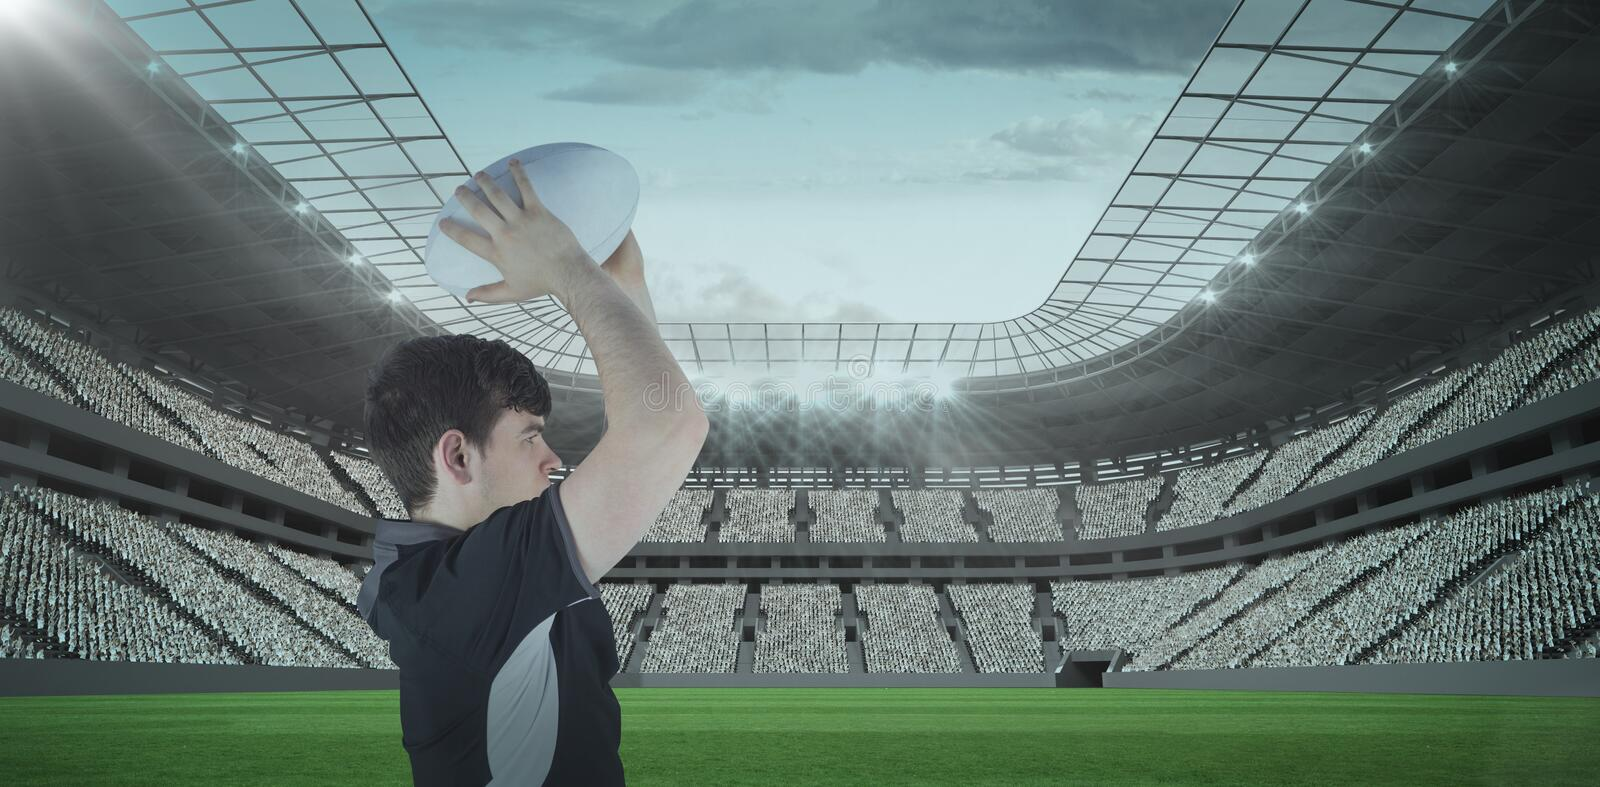 Composite image 3D of profile view of rugby player throwing a ball stock image